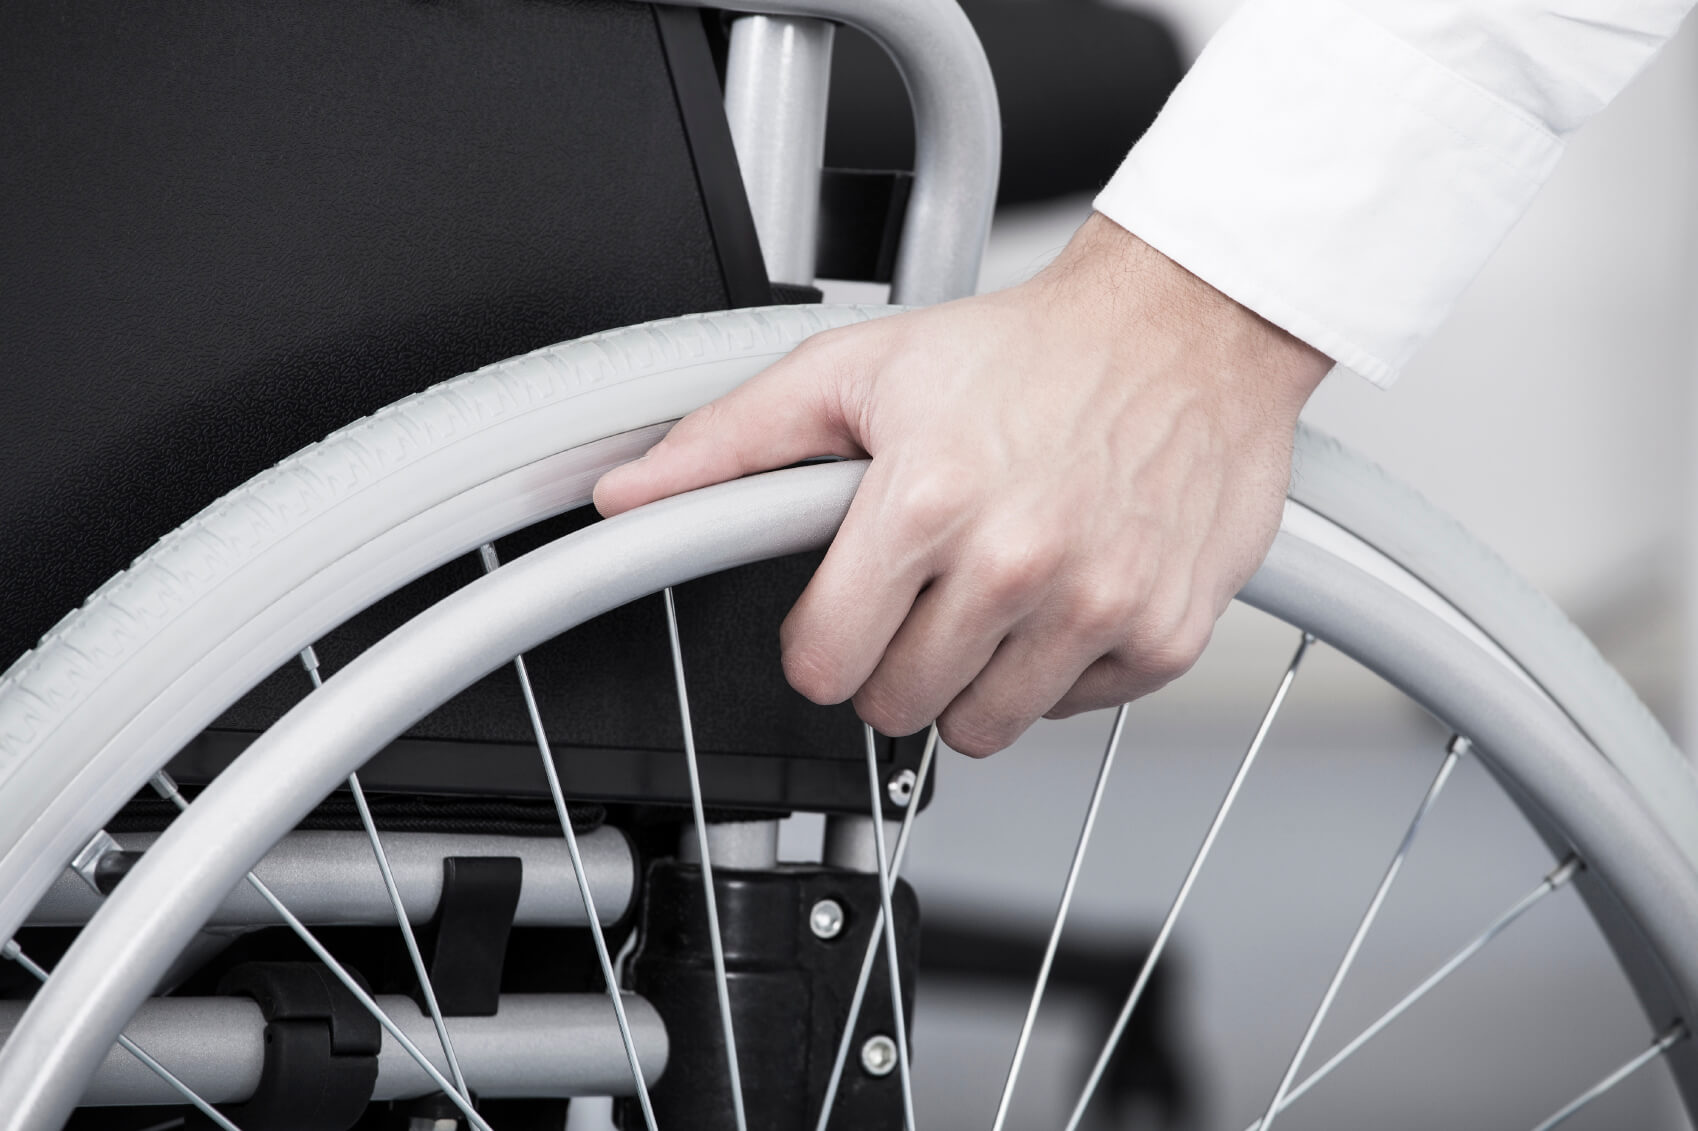 Discrimination arising from disability: too little of a good thing?